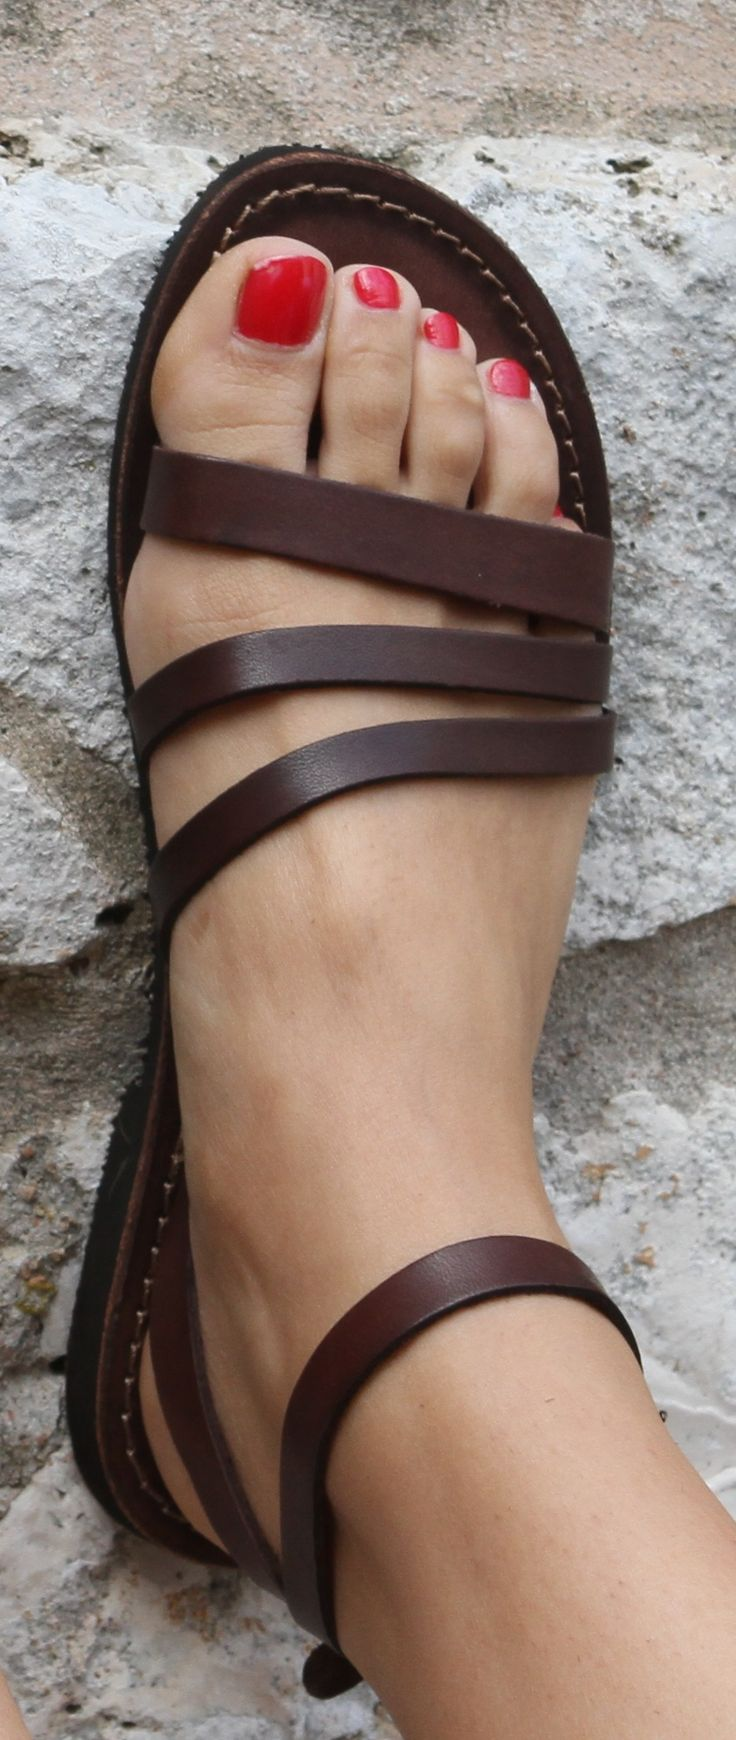 I love SANDALS :-), especially if they dont have that annoying piece between the toes like flip flops.